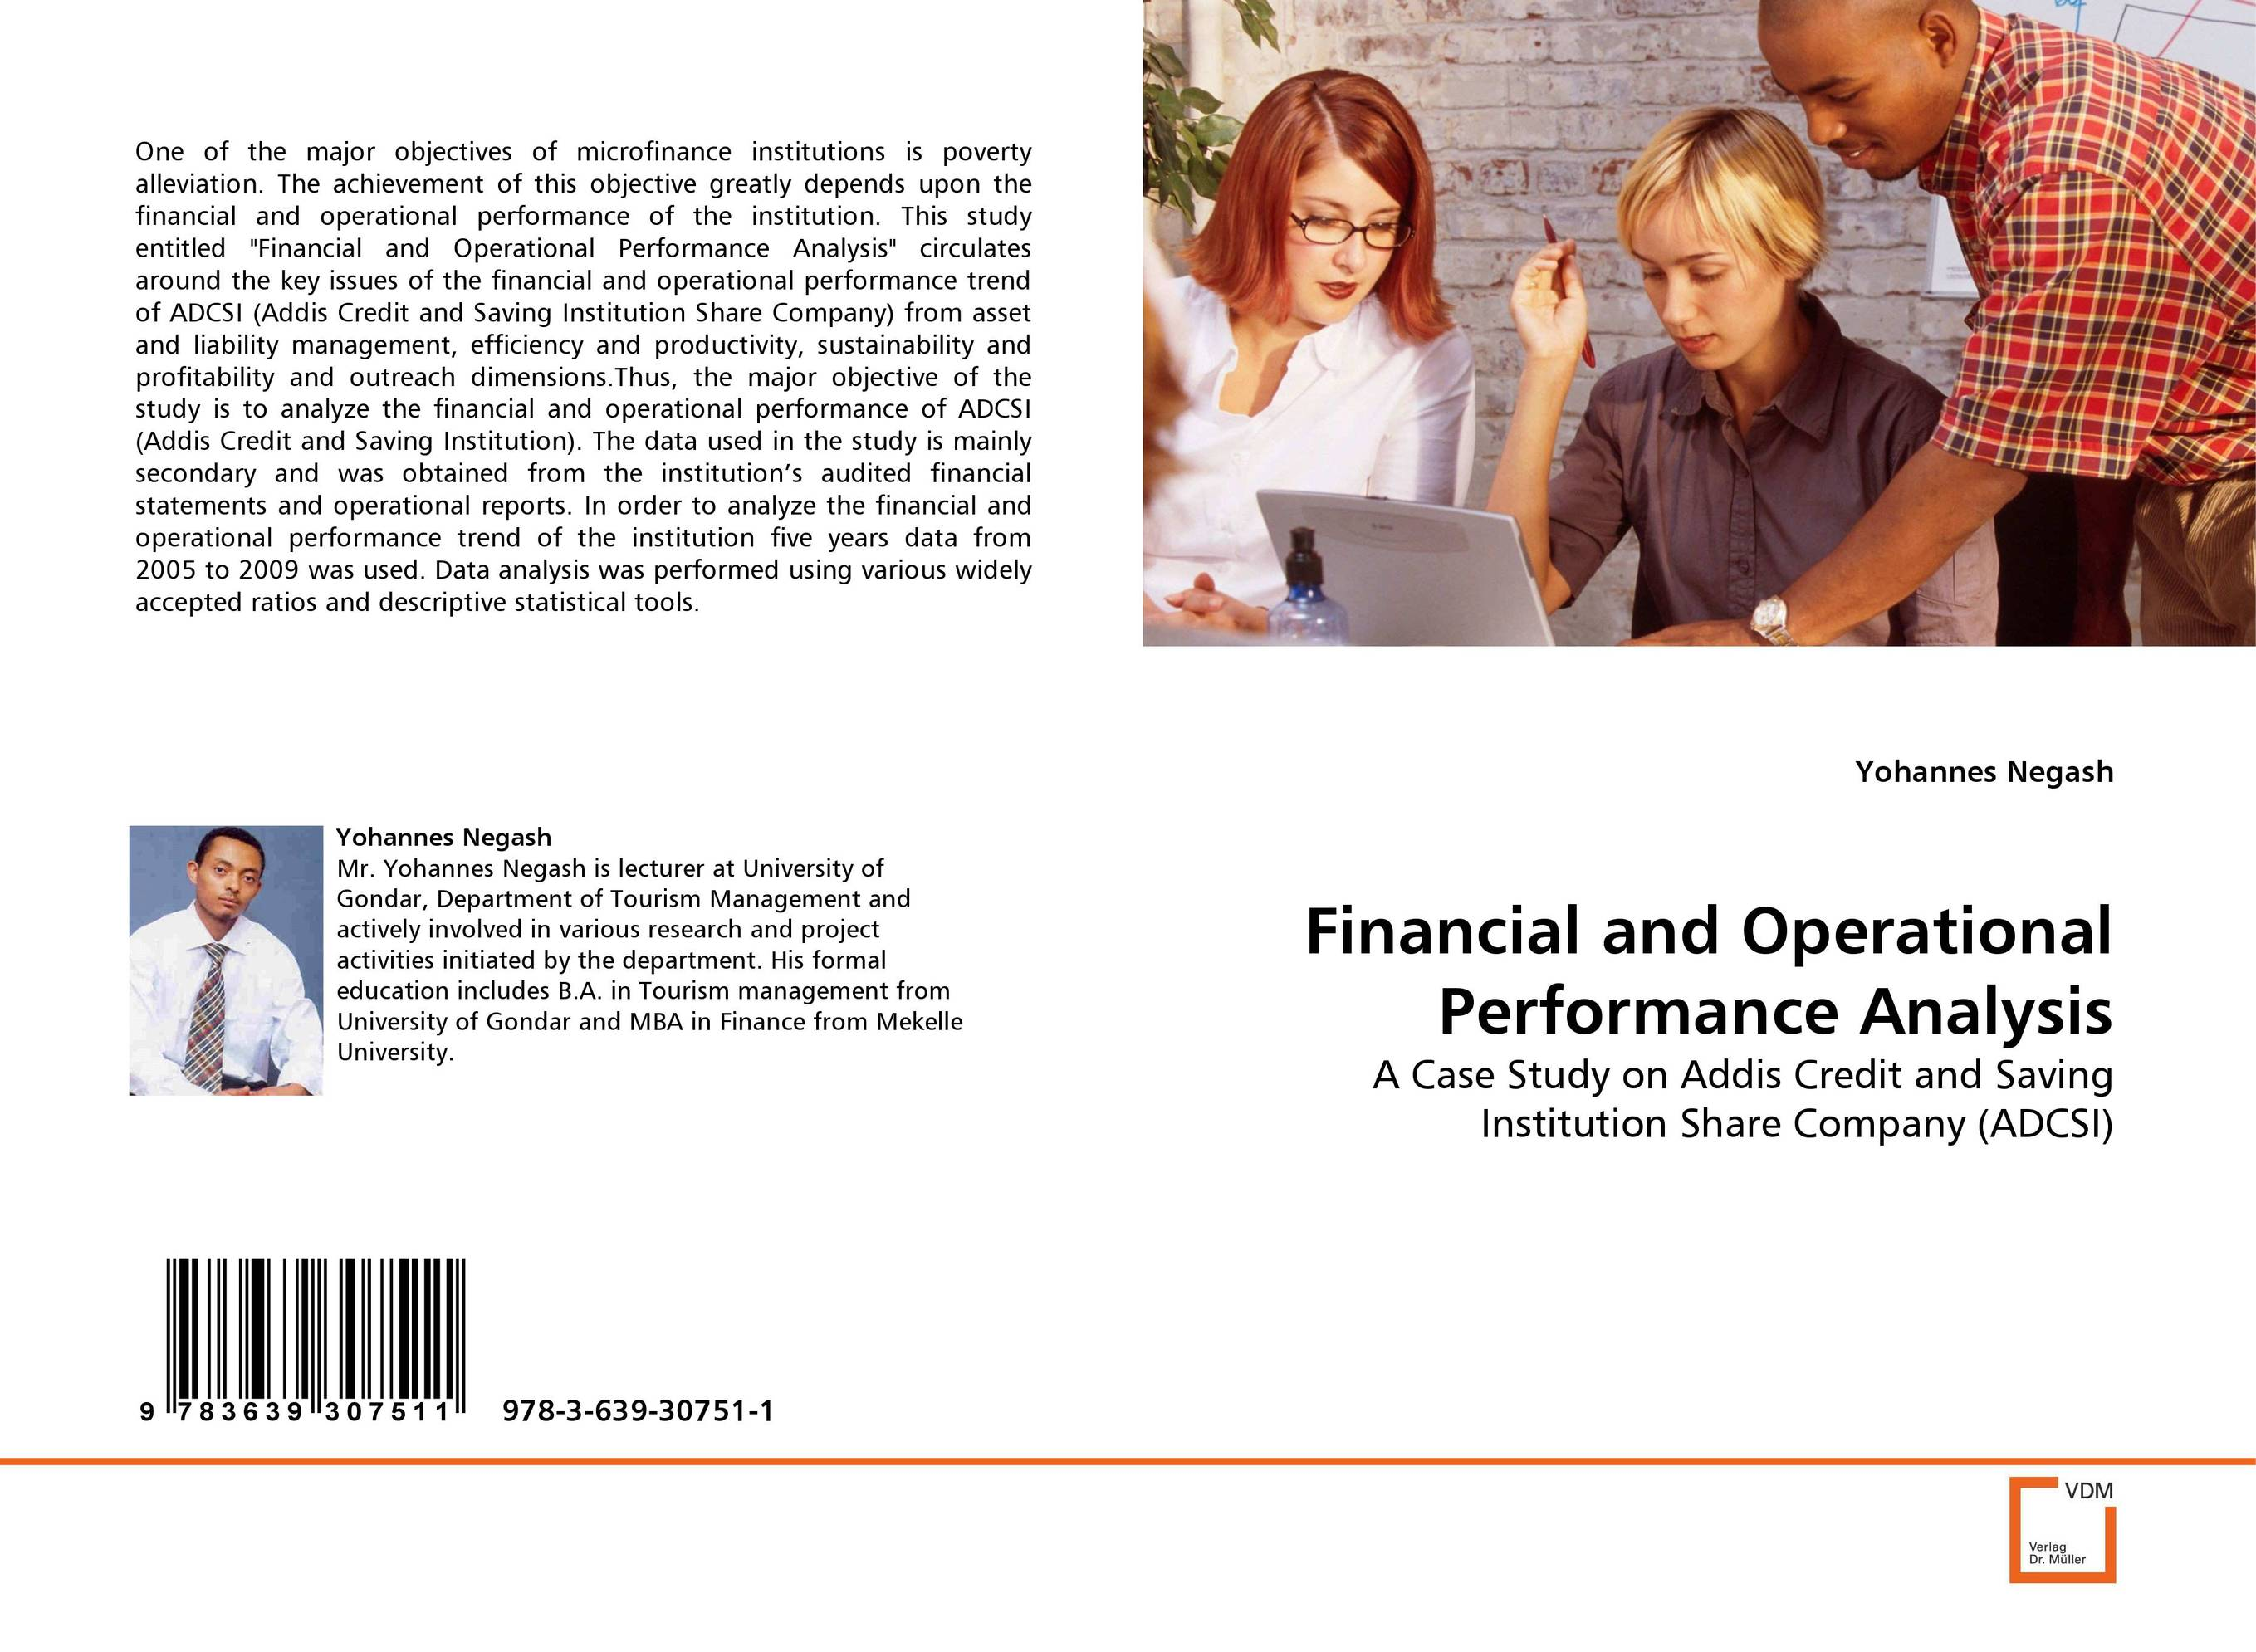 Financial and Operational Performance Analysis outreach sustainability and growth of saving and credit cooperatives